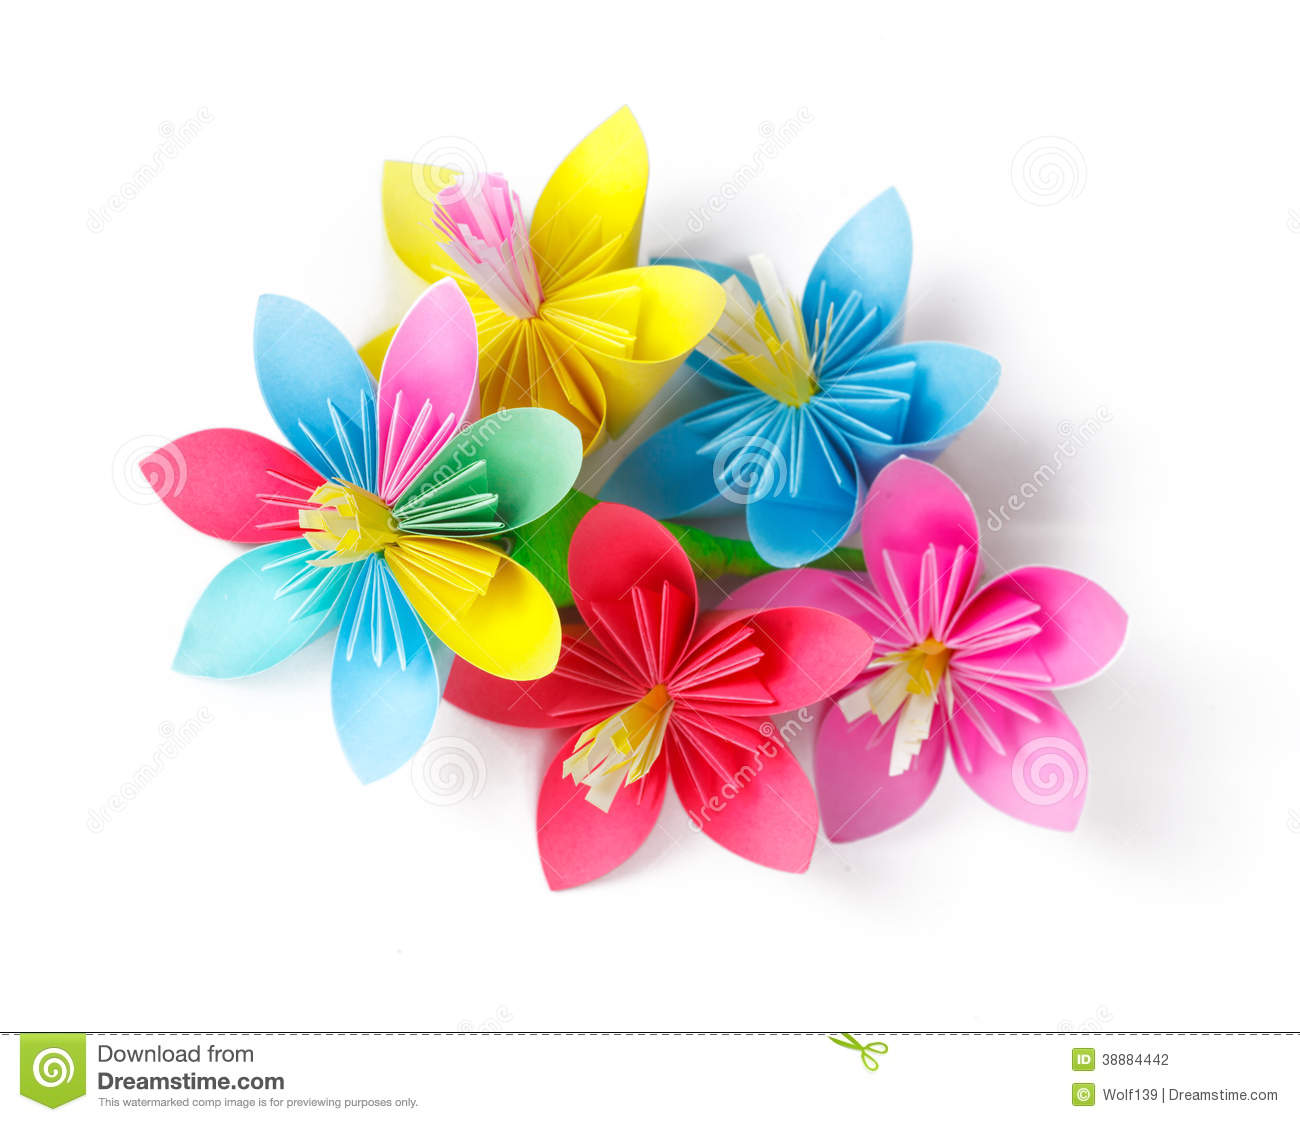 Many colored paper flowers stock photo image of march 38884442 download many colored paper flowers stock photo image of march 38884442 mightylinksfo